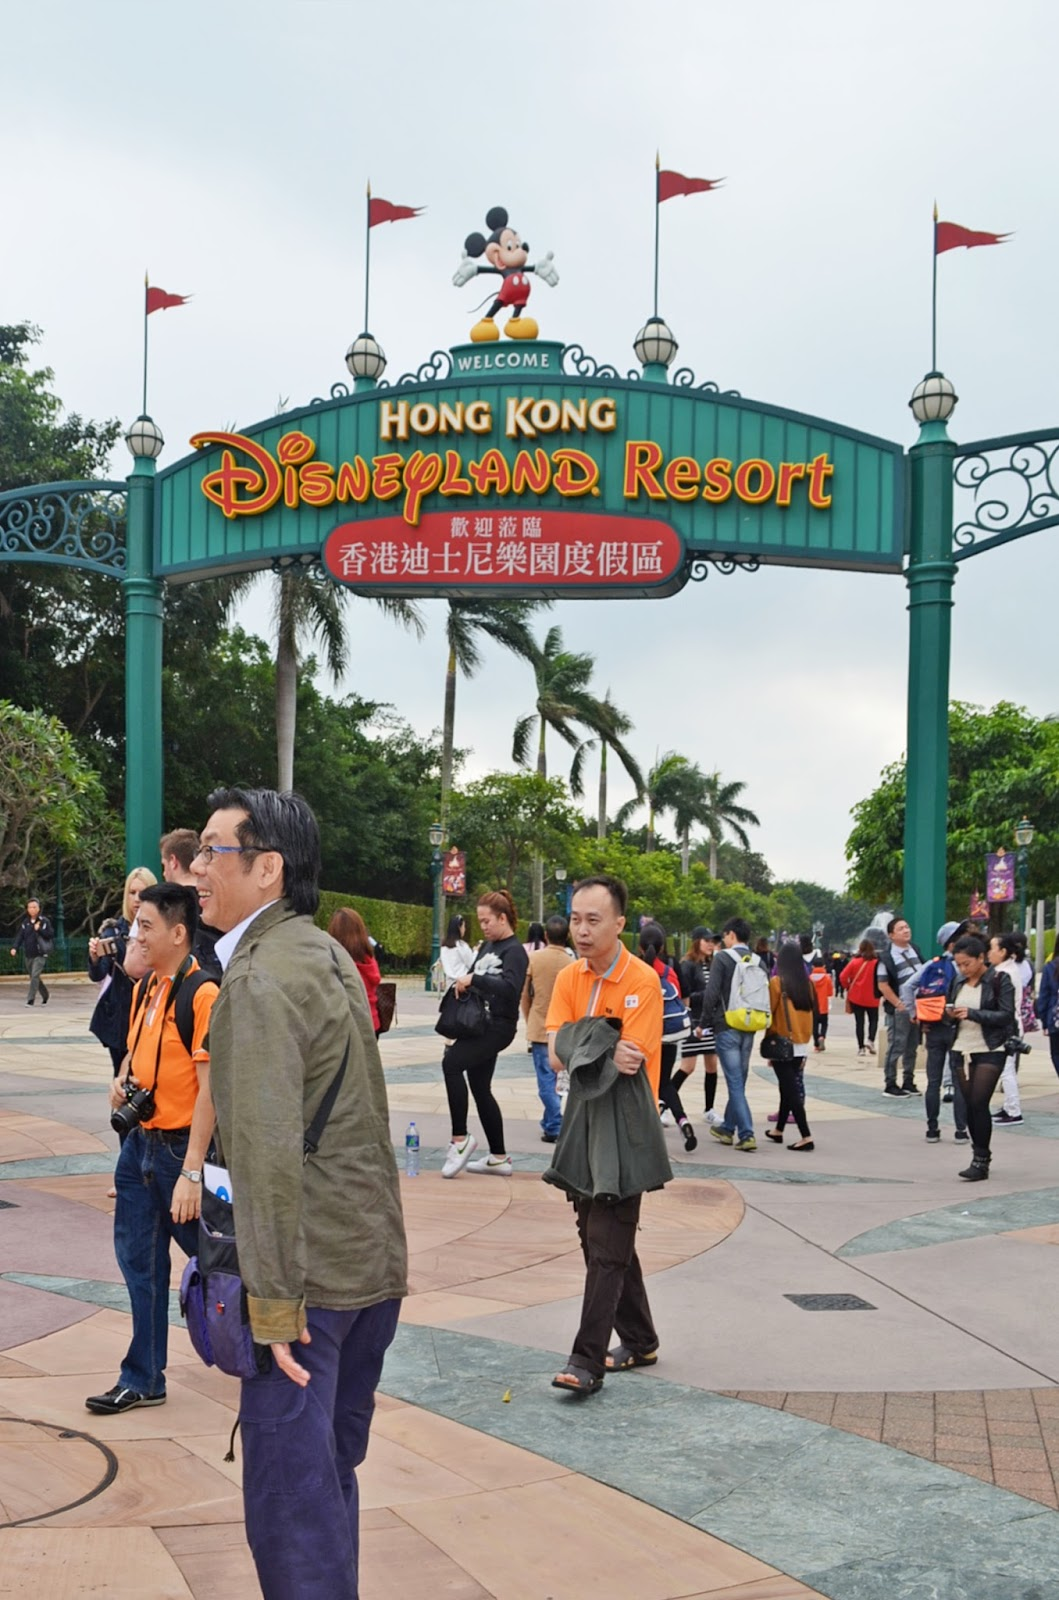 hong kong disneyland recommendation Hong kong disneyland is one of the most popular things to do in hong kong with kids read our hong kong disneyland tips to get the most out of your visit.